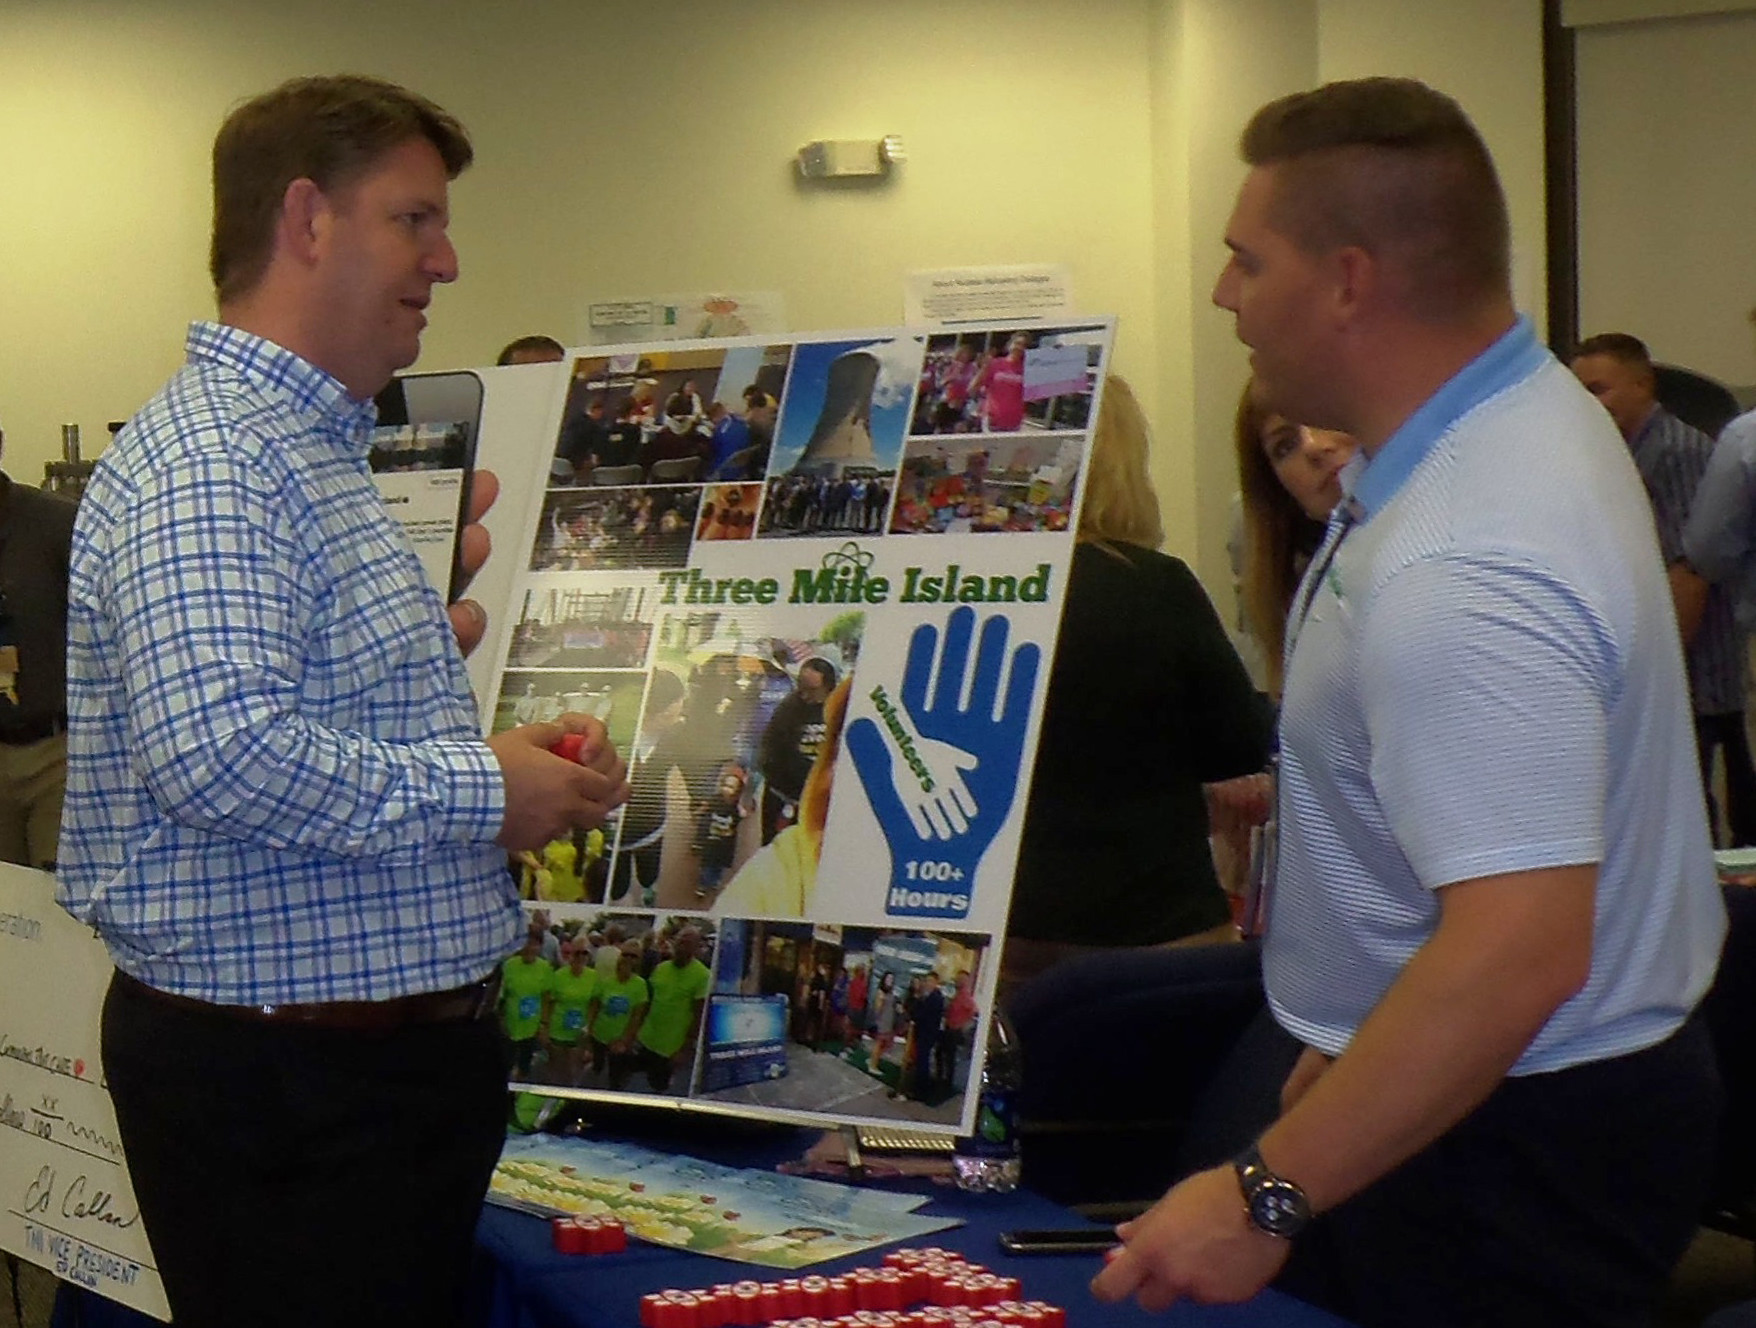 Company spokesman Dave Marcheskie, right, chats with a visitor during Three Mile Island Generating Station's Community Information Night on Sept. 7.